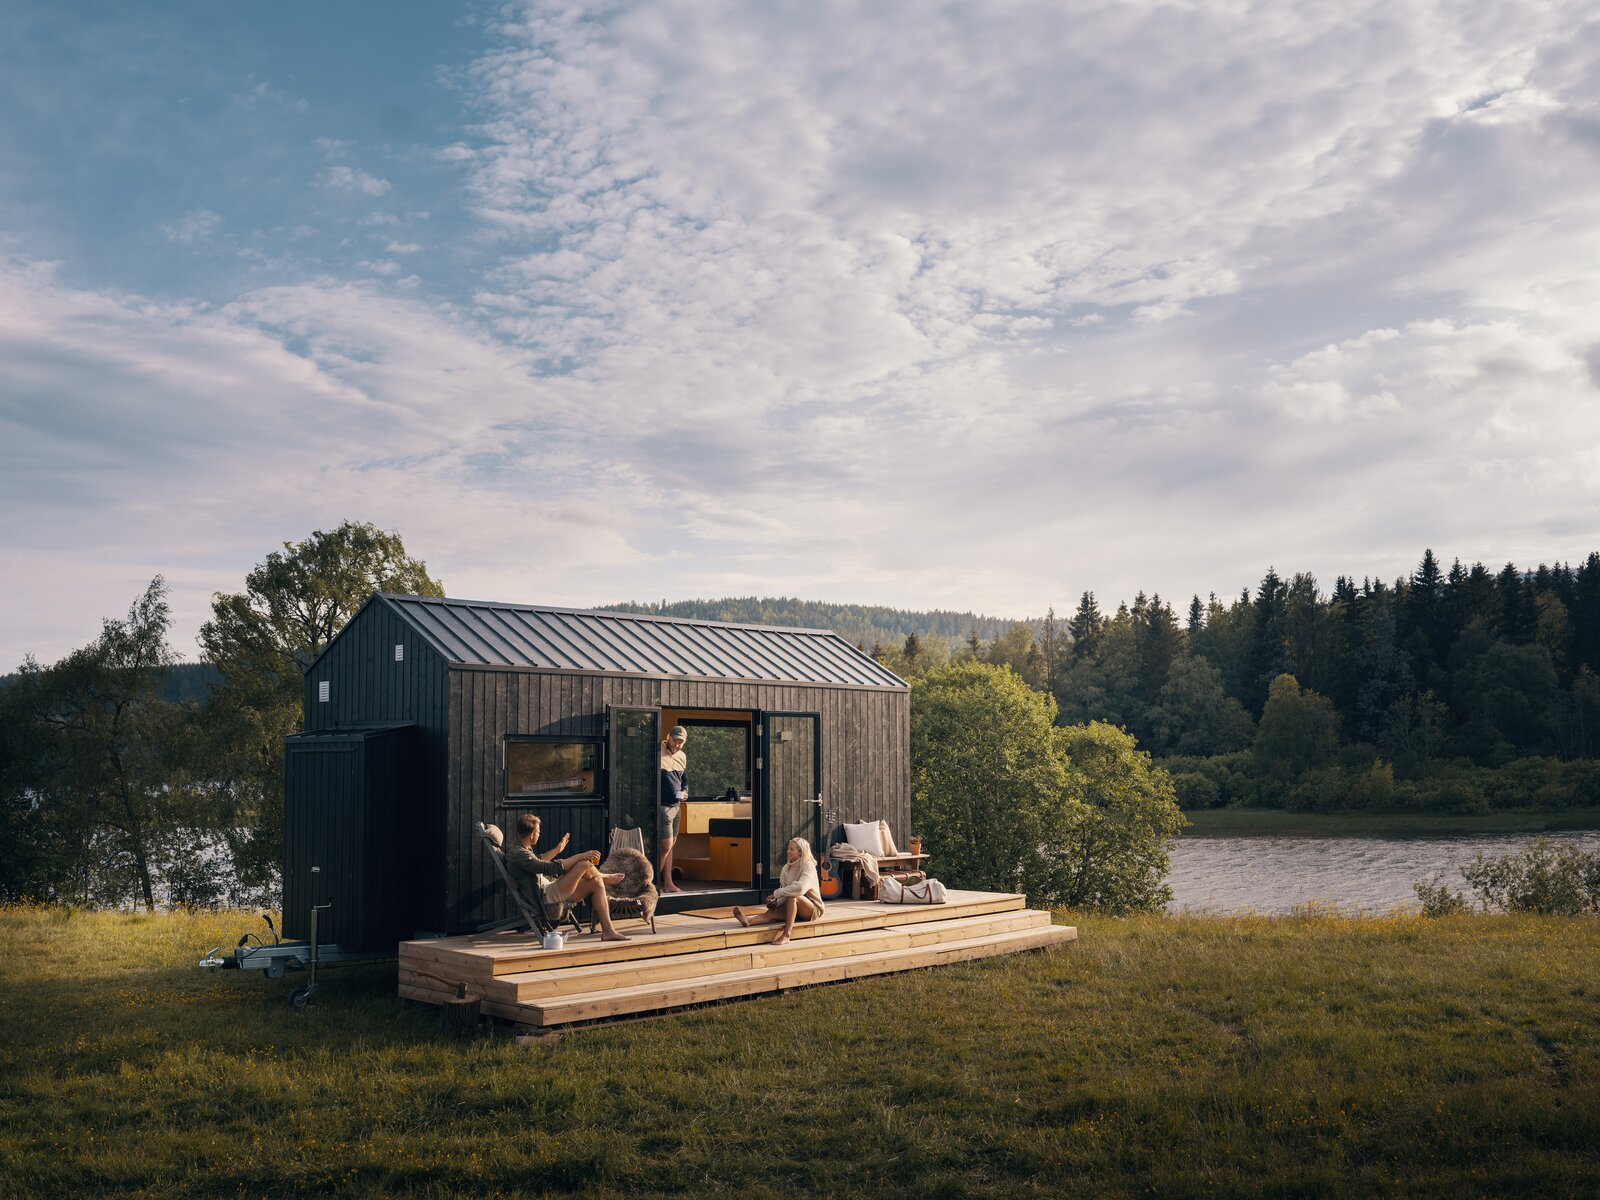 Norske Mikrohus's latest project, Rast, is a 174-square-foot-home that promises to get you closer to nature.